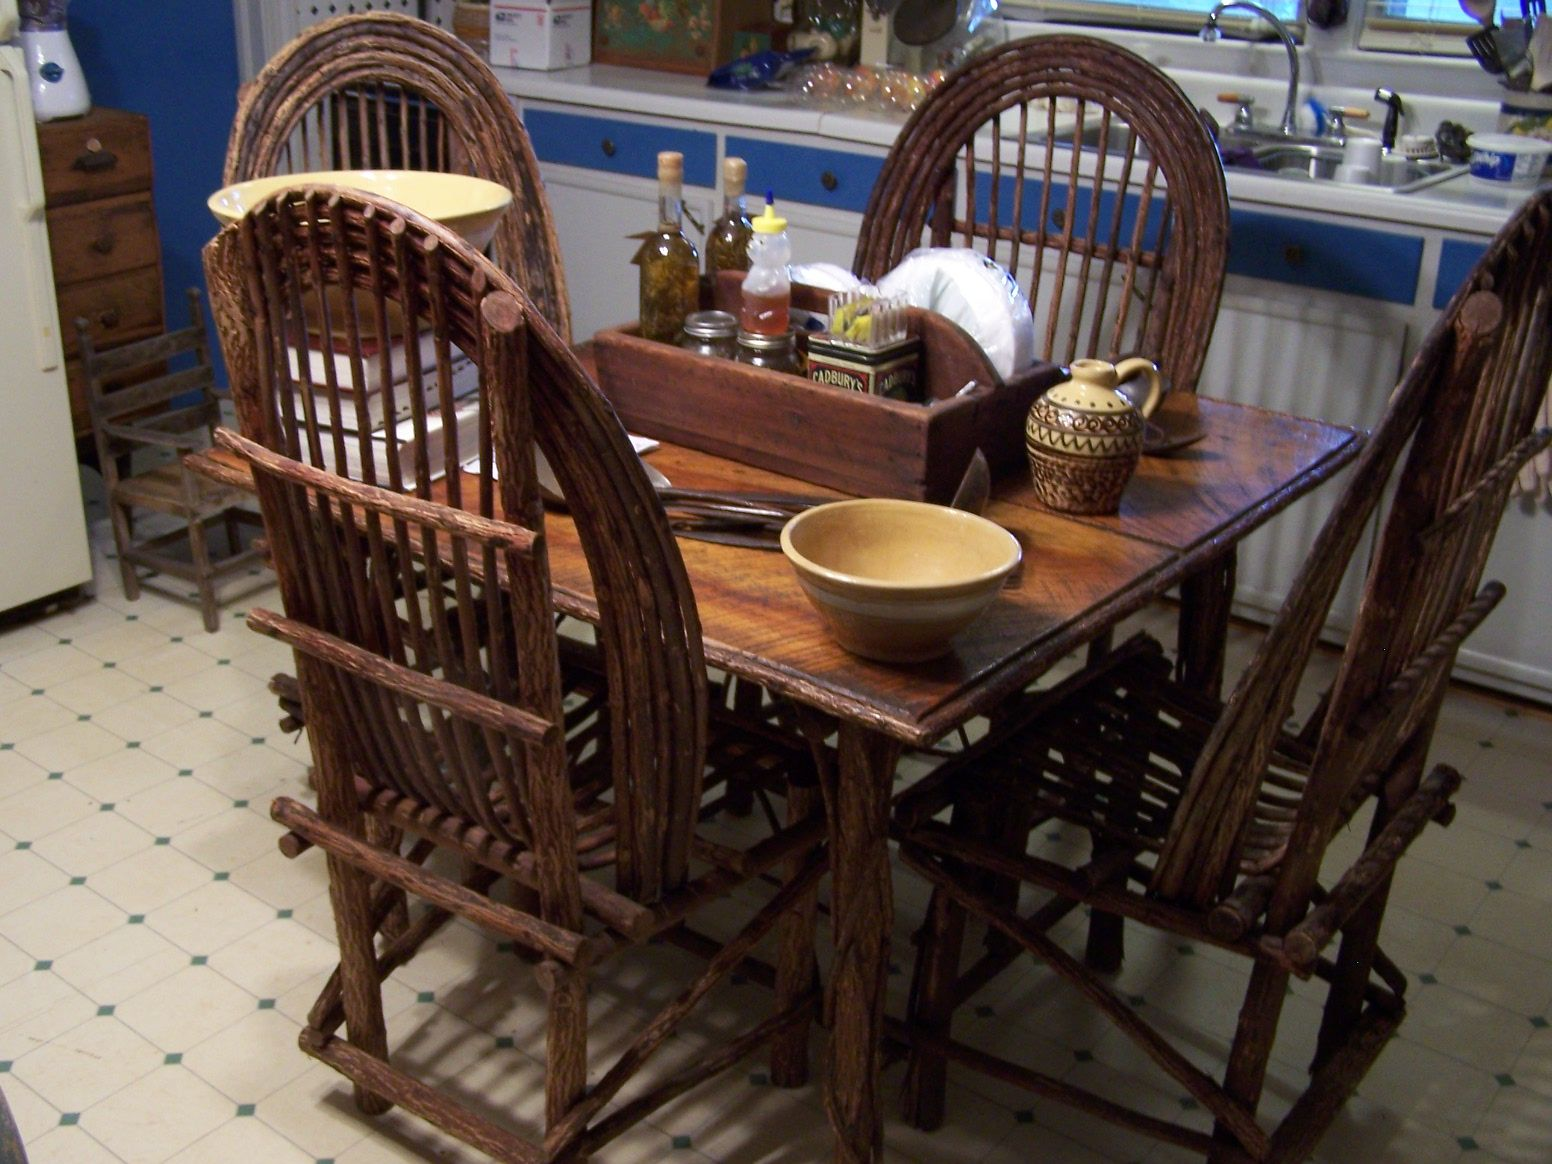 Nice Table U0026 Chairs Made By Famous Twig Furniture Maker In Boone N.C.